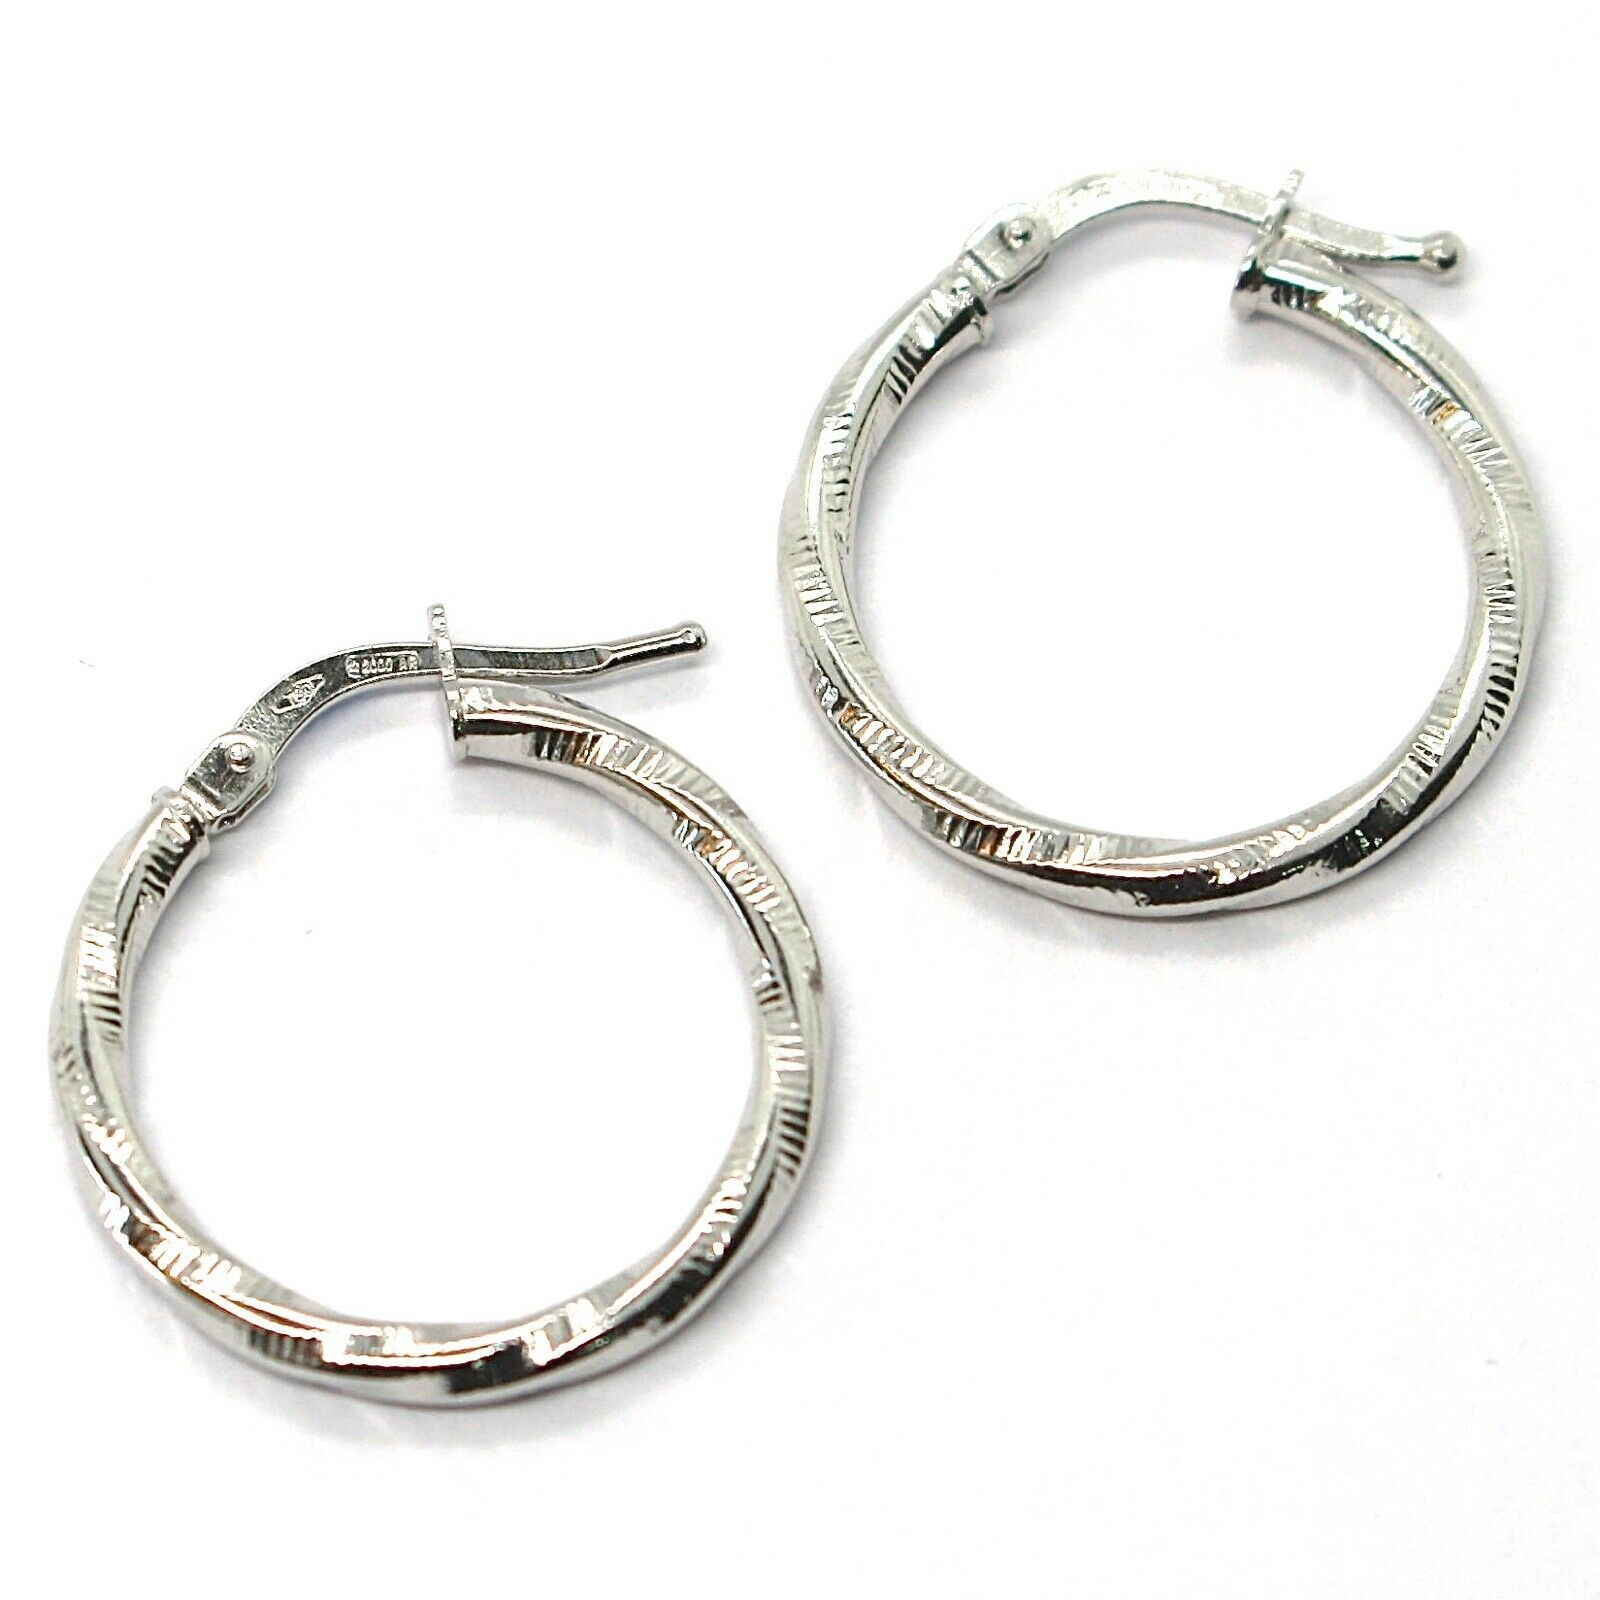 18K WHITE GOLD CIRCLE HOOPS TWISTED STRIPED EARRINGS 20 MM, 2 MM THICK, ITALY